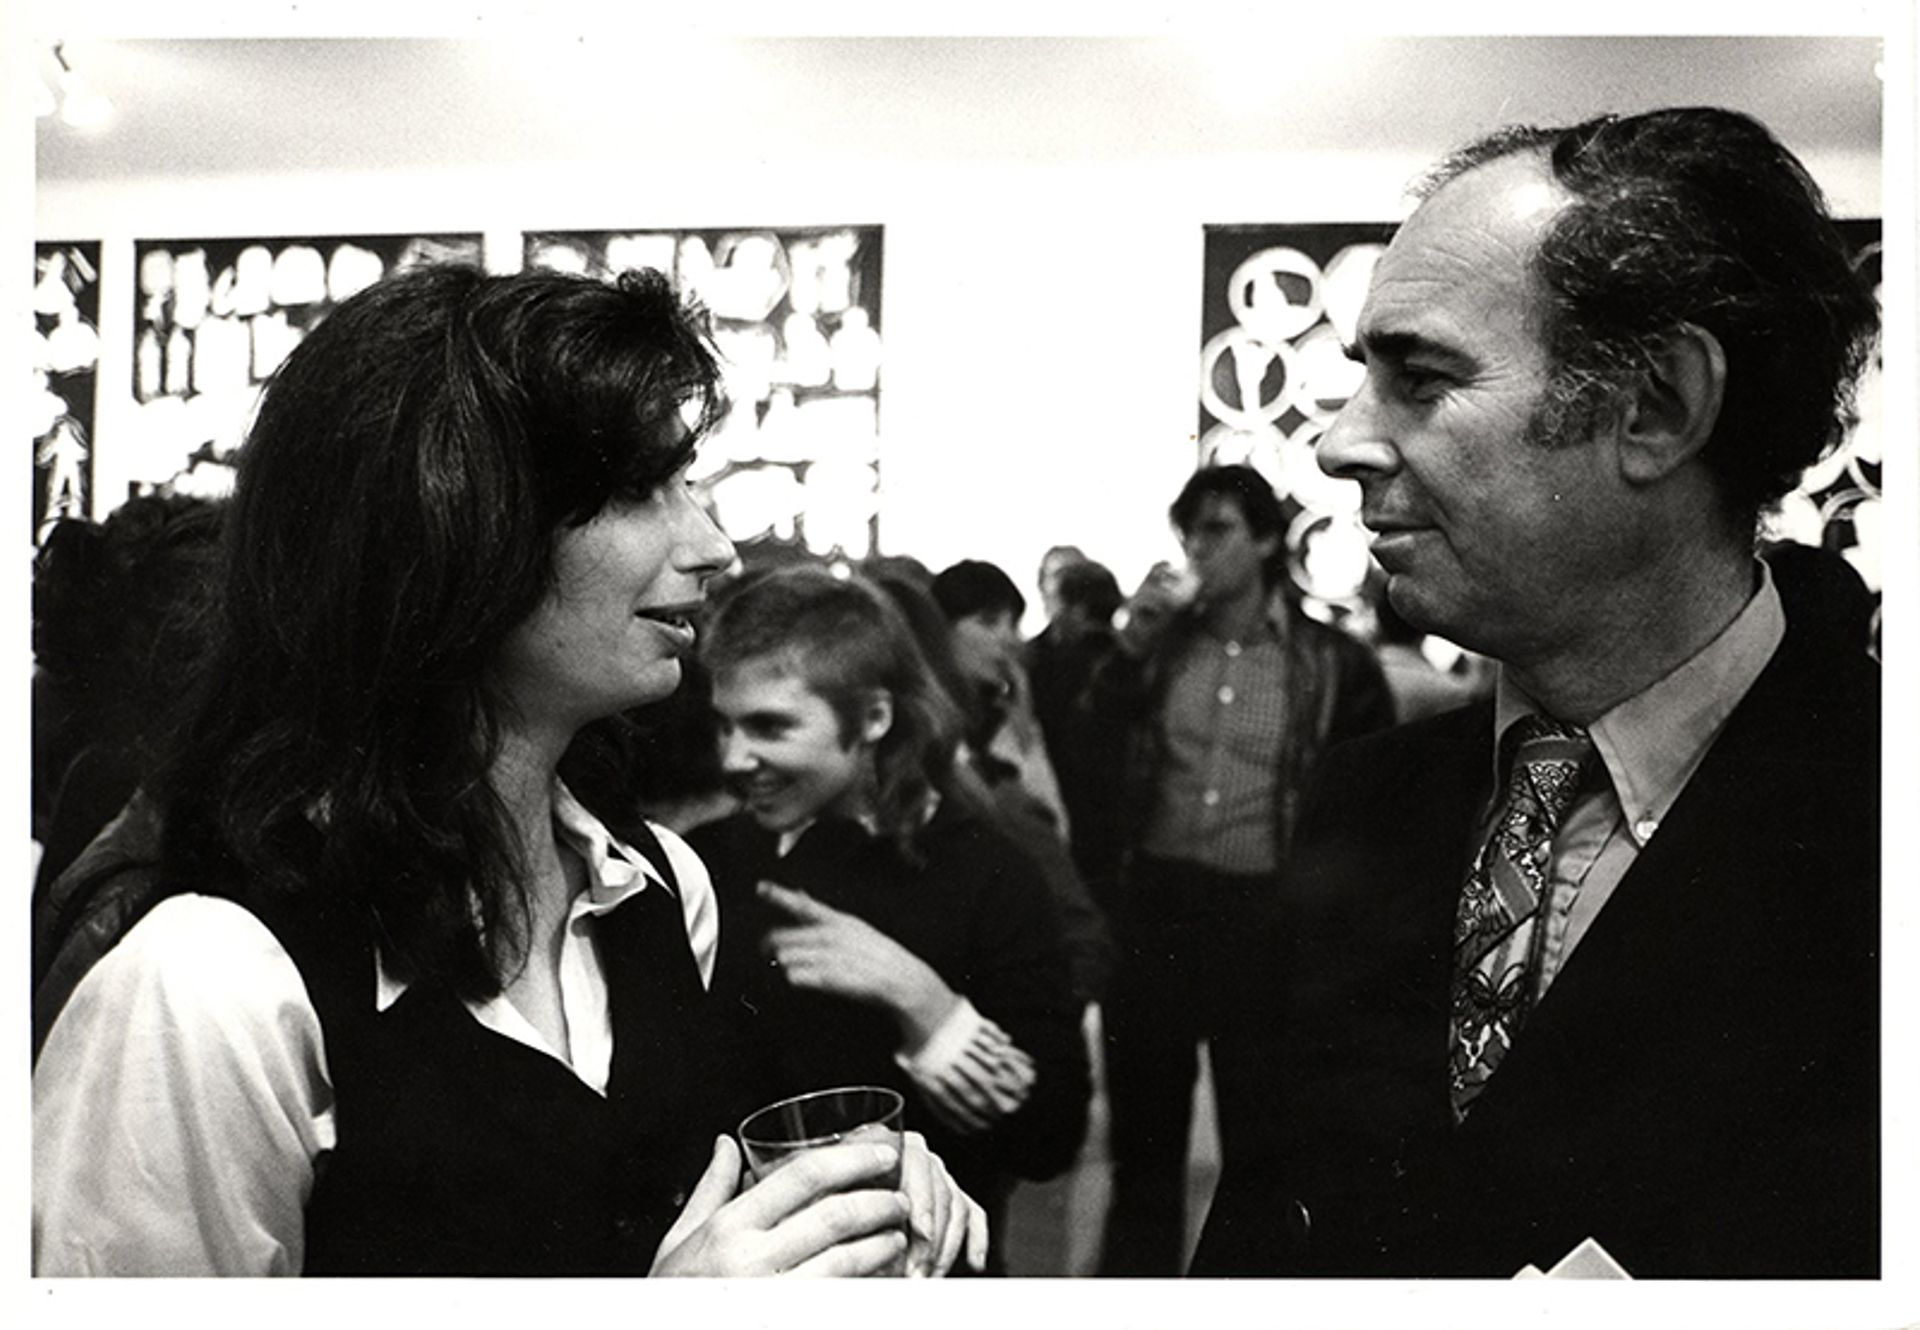 Irving Sandler with the artist Sherrie Levine at an exhibition opening at Artists Space in 1977 Courtesy Artists Space, New York